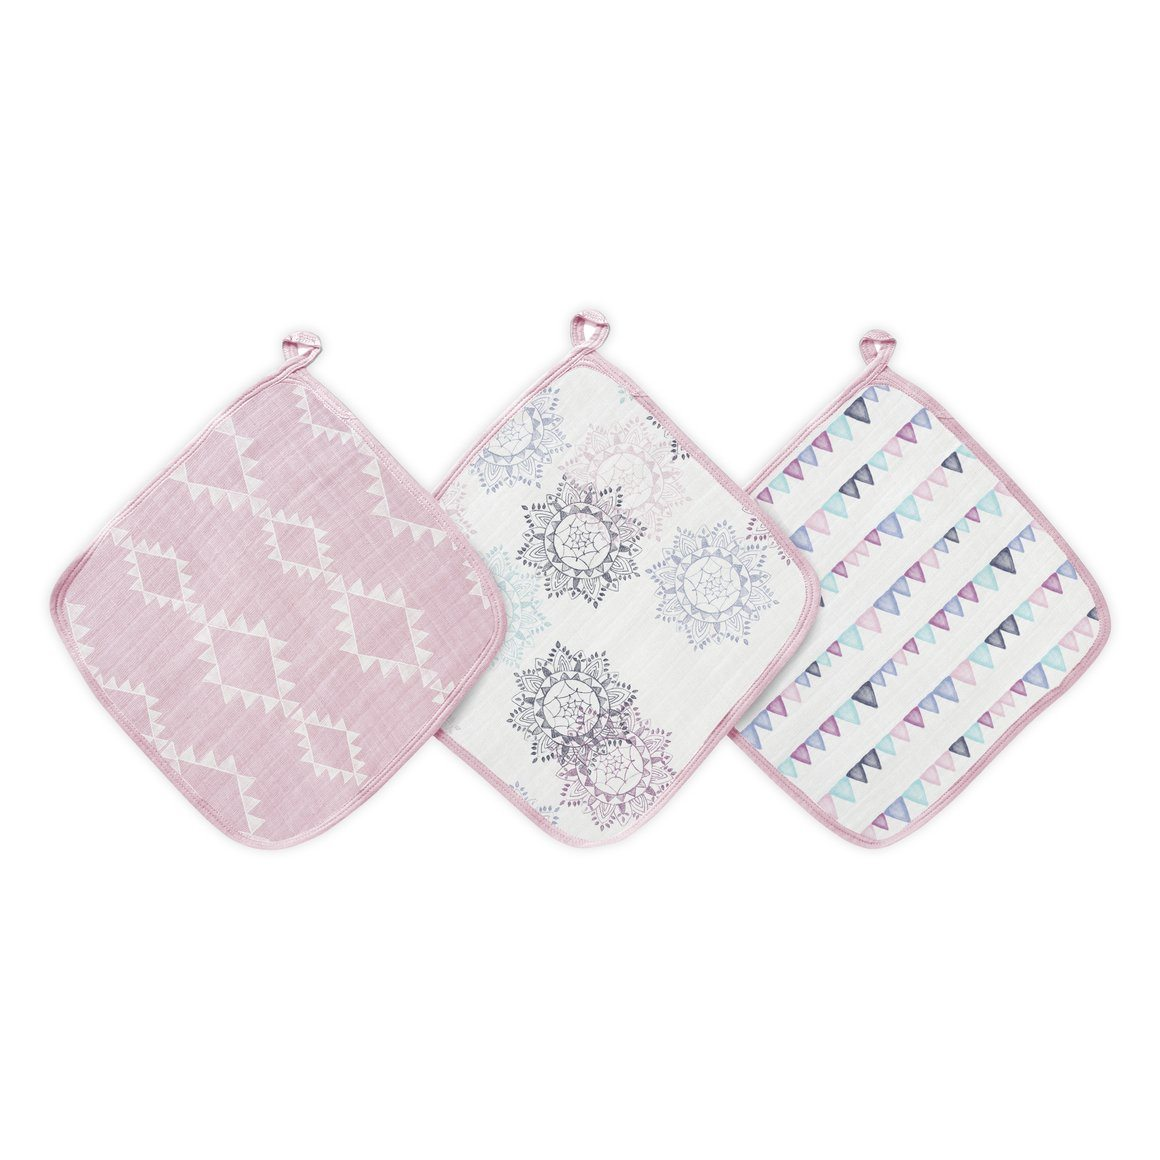 Pretty Pink Wash Cloths (3 Pack)